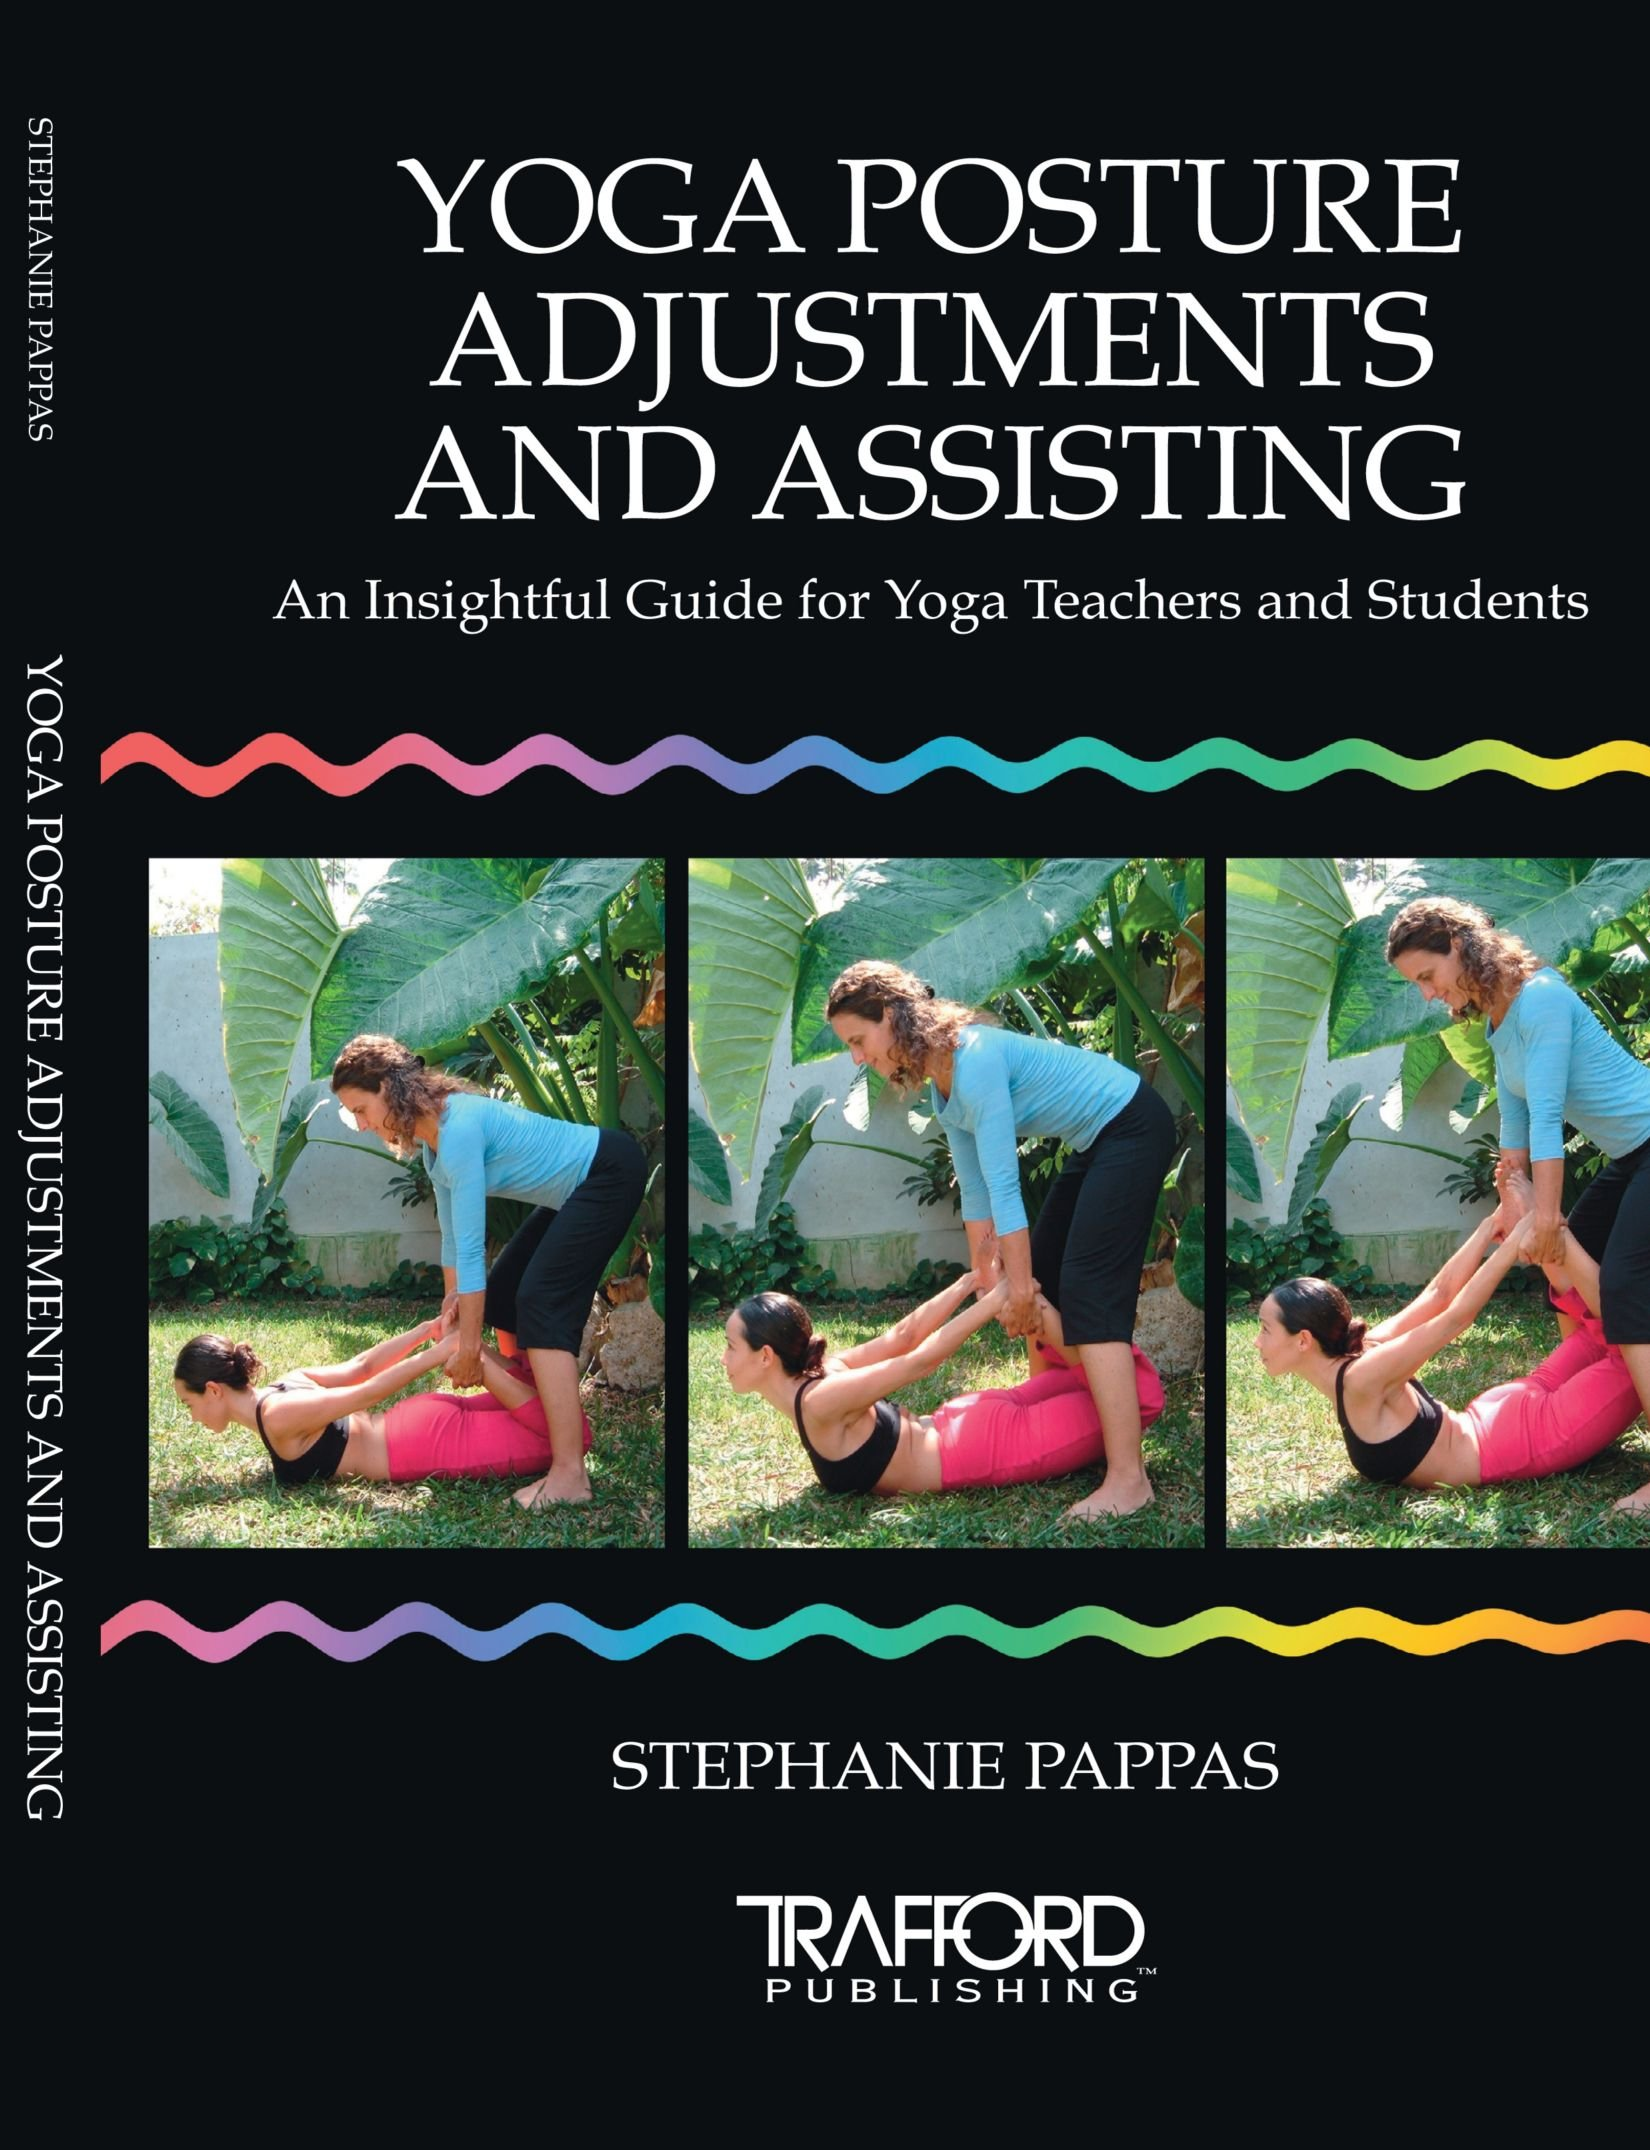 Yoga Posture Adjustments And Assisting: An Insightful Guide For Yoga  Teachers And Students: Stephanie Pappas: 9781412051620: Amazon: Books